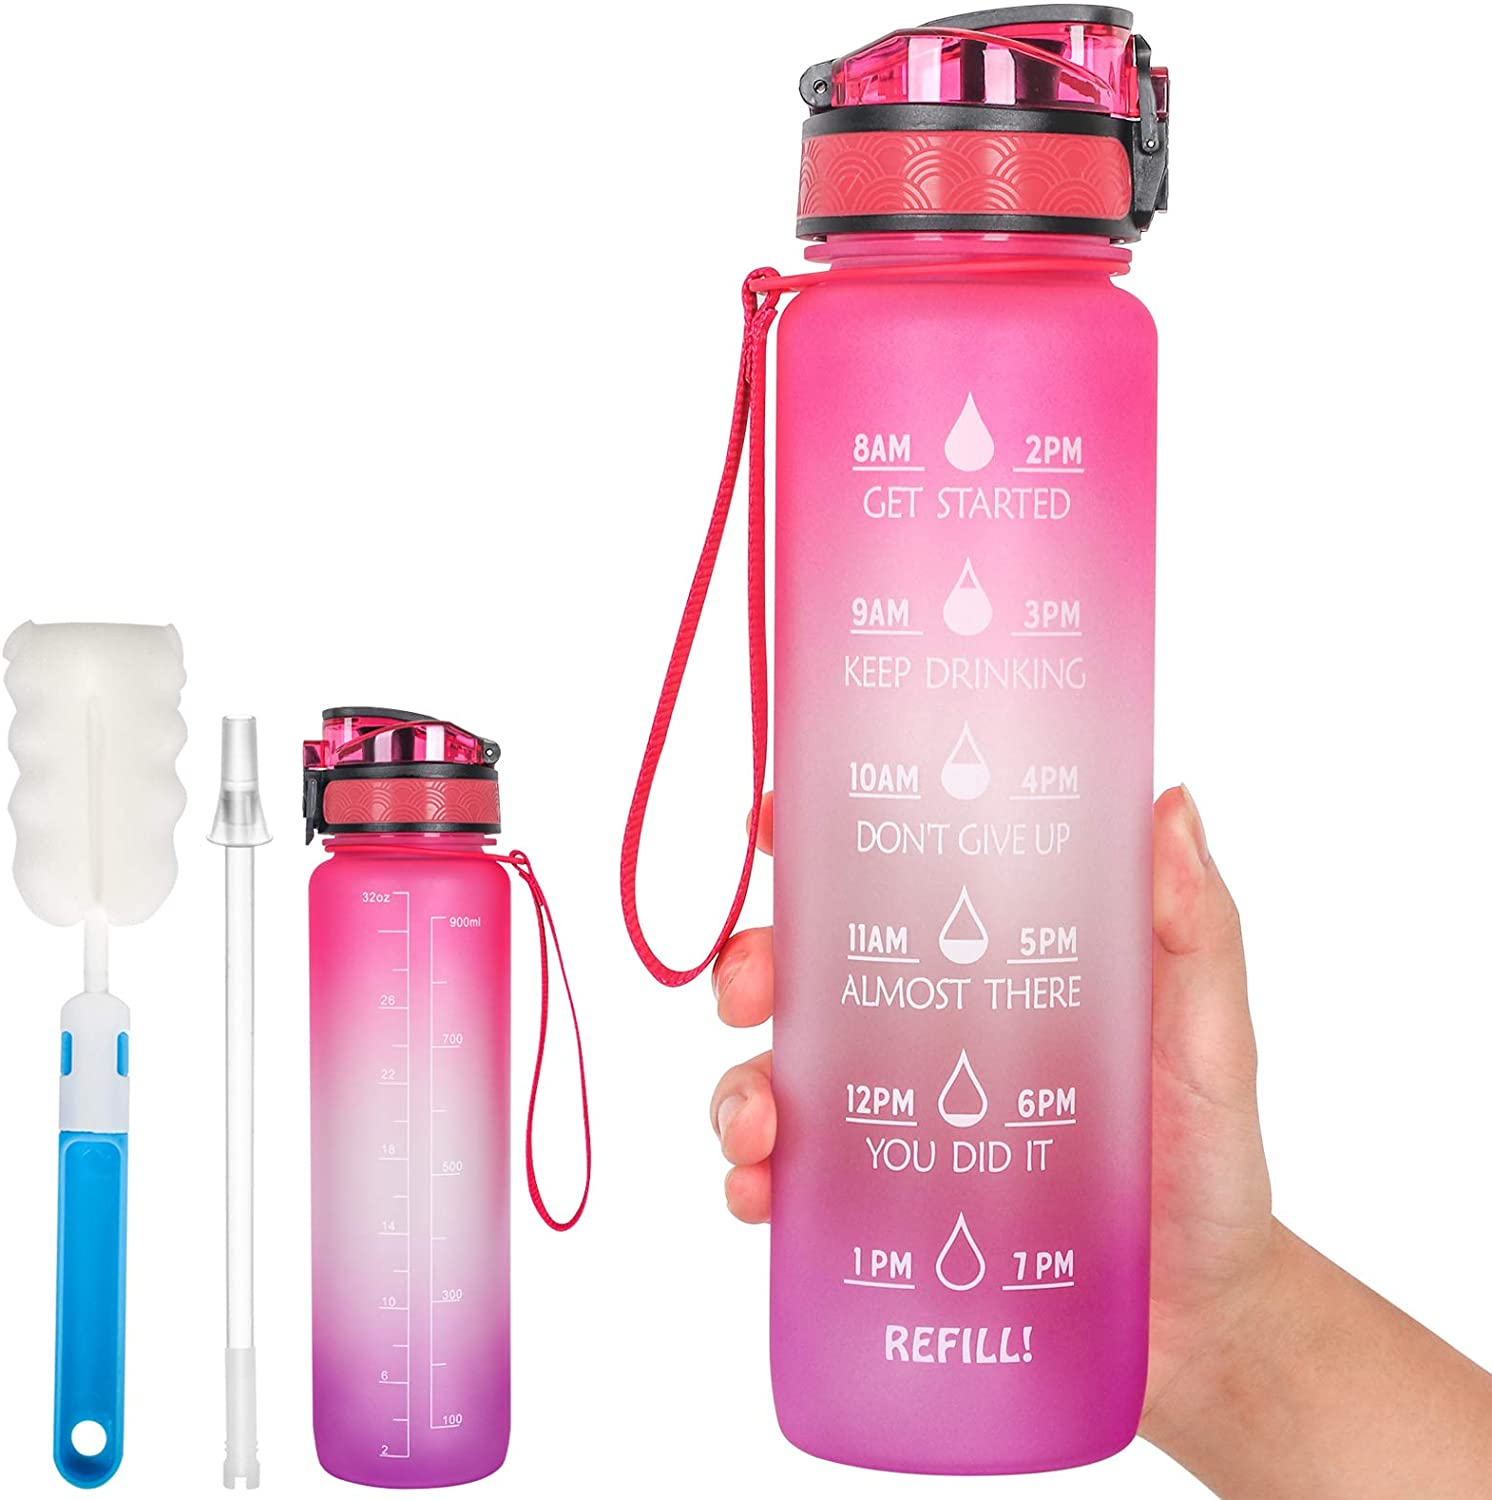 N - A 32oz Water Bottles with Time Marker to Drink BPA Free Non-Toxic Wide Mouth Leakproof Motivational Sports Water Jug with Removable Straw Strainer for Gym Workout Outdoors